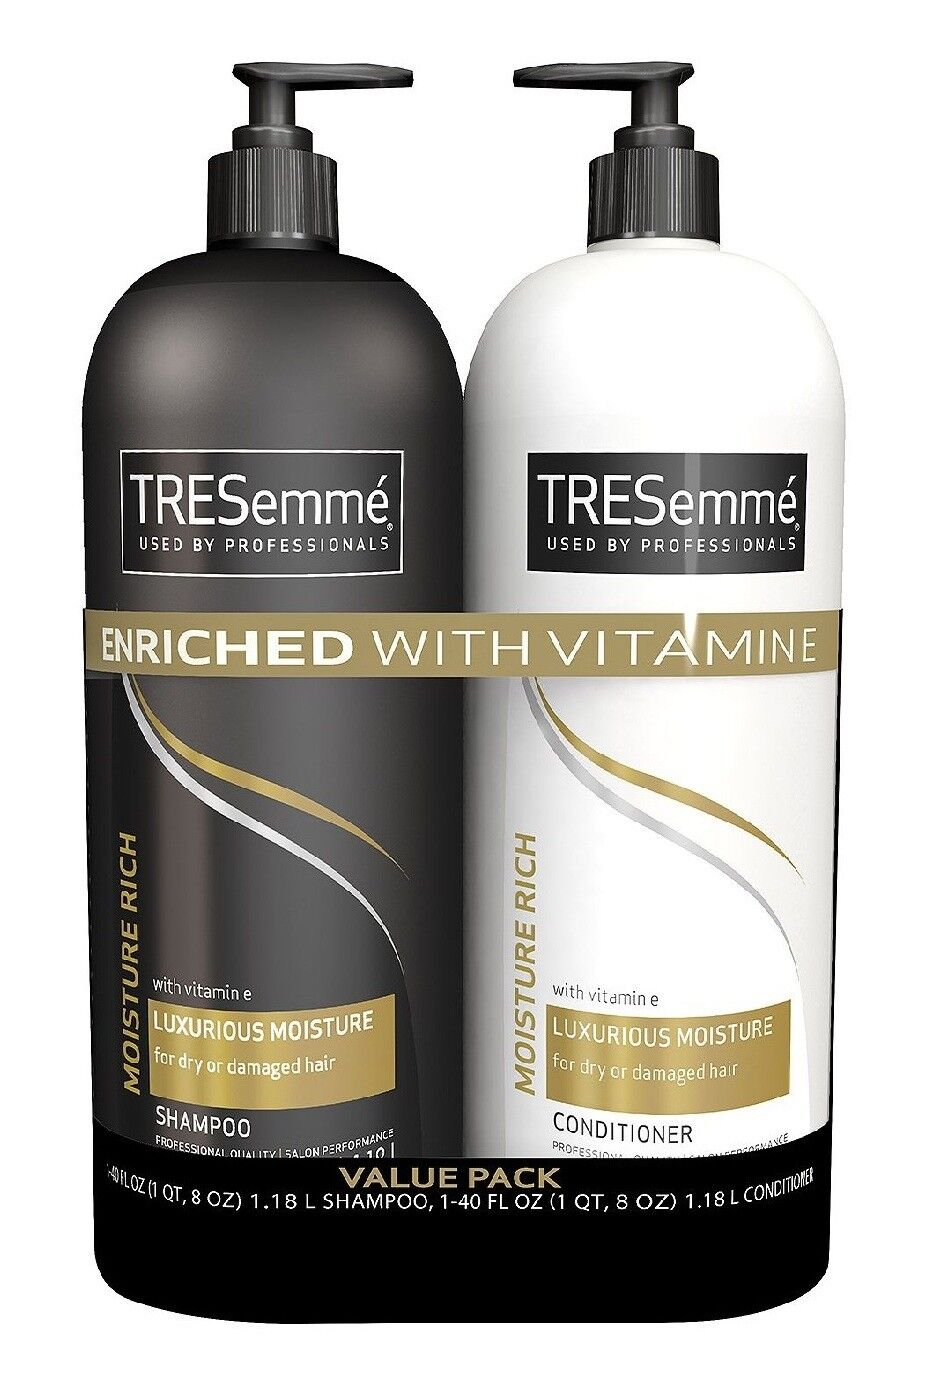 TRESemme Shampoo and Conditioner Value Pack 2pk Moisture Ric